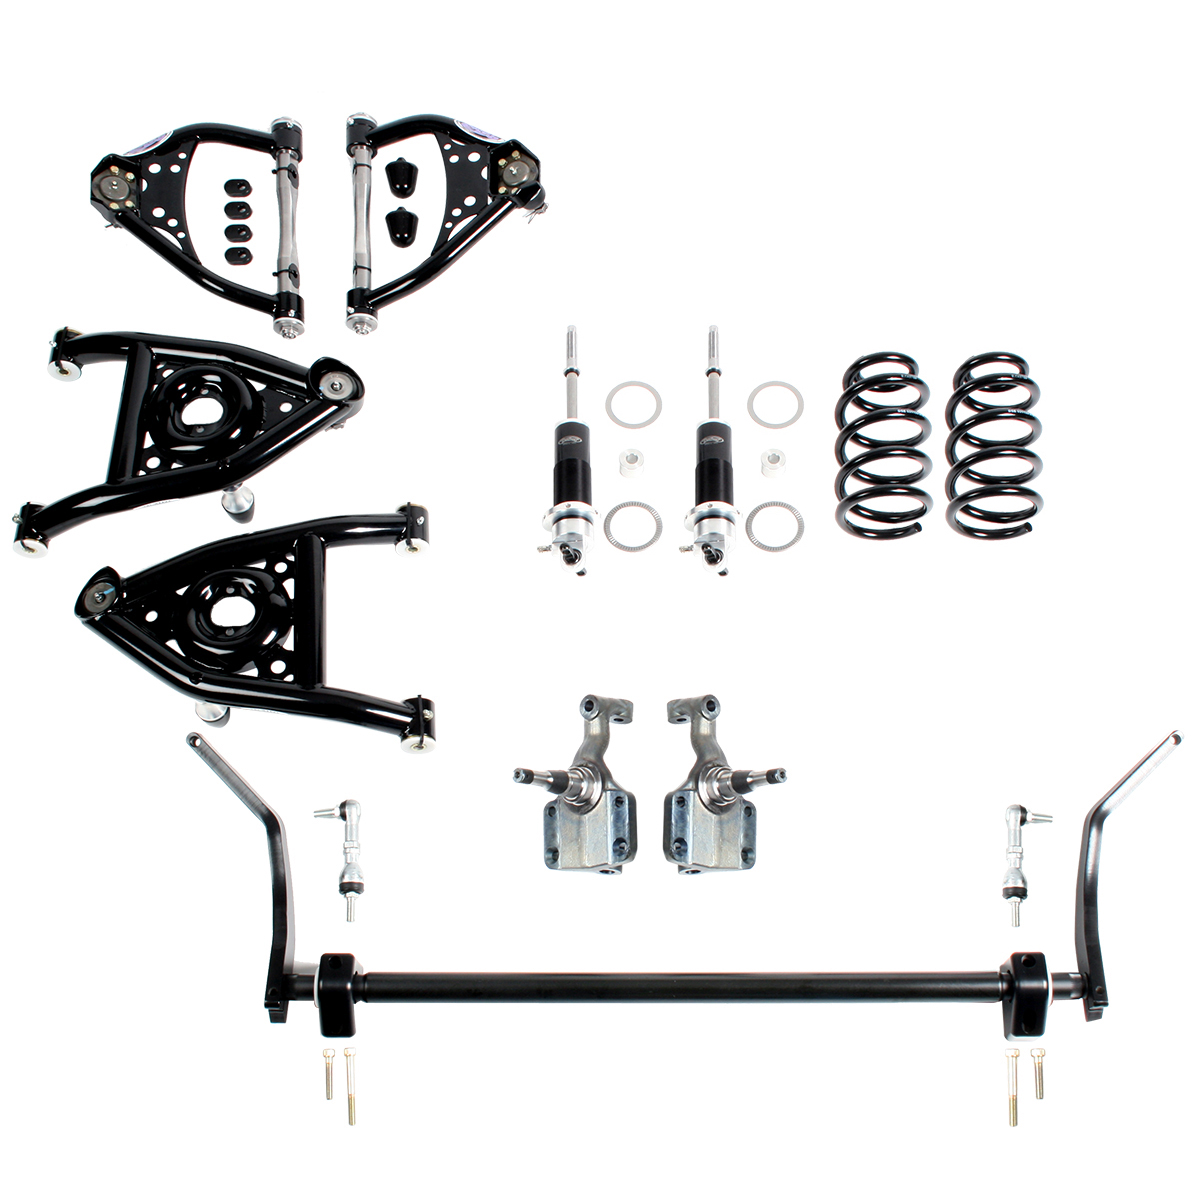 Detroit Speed  Speed Kit 2 Front Suspension Kit with Splined Sway Bar Double Adjustable Shocks w/Remote Canister 1968-1972 A-Body SBC